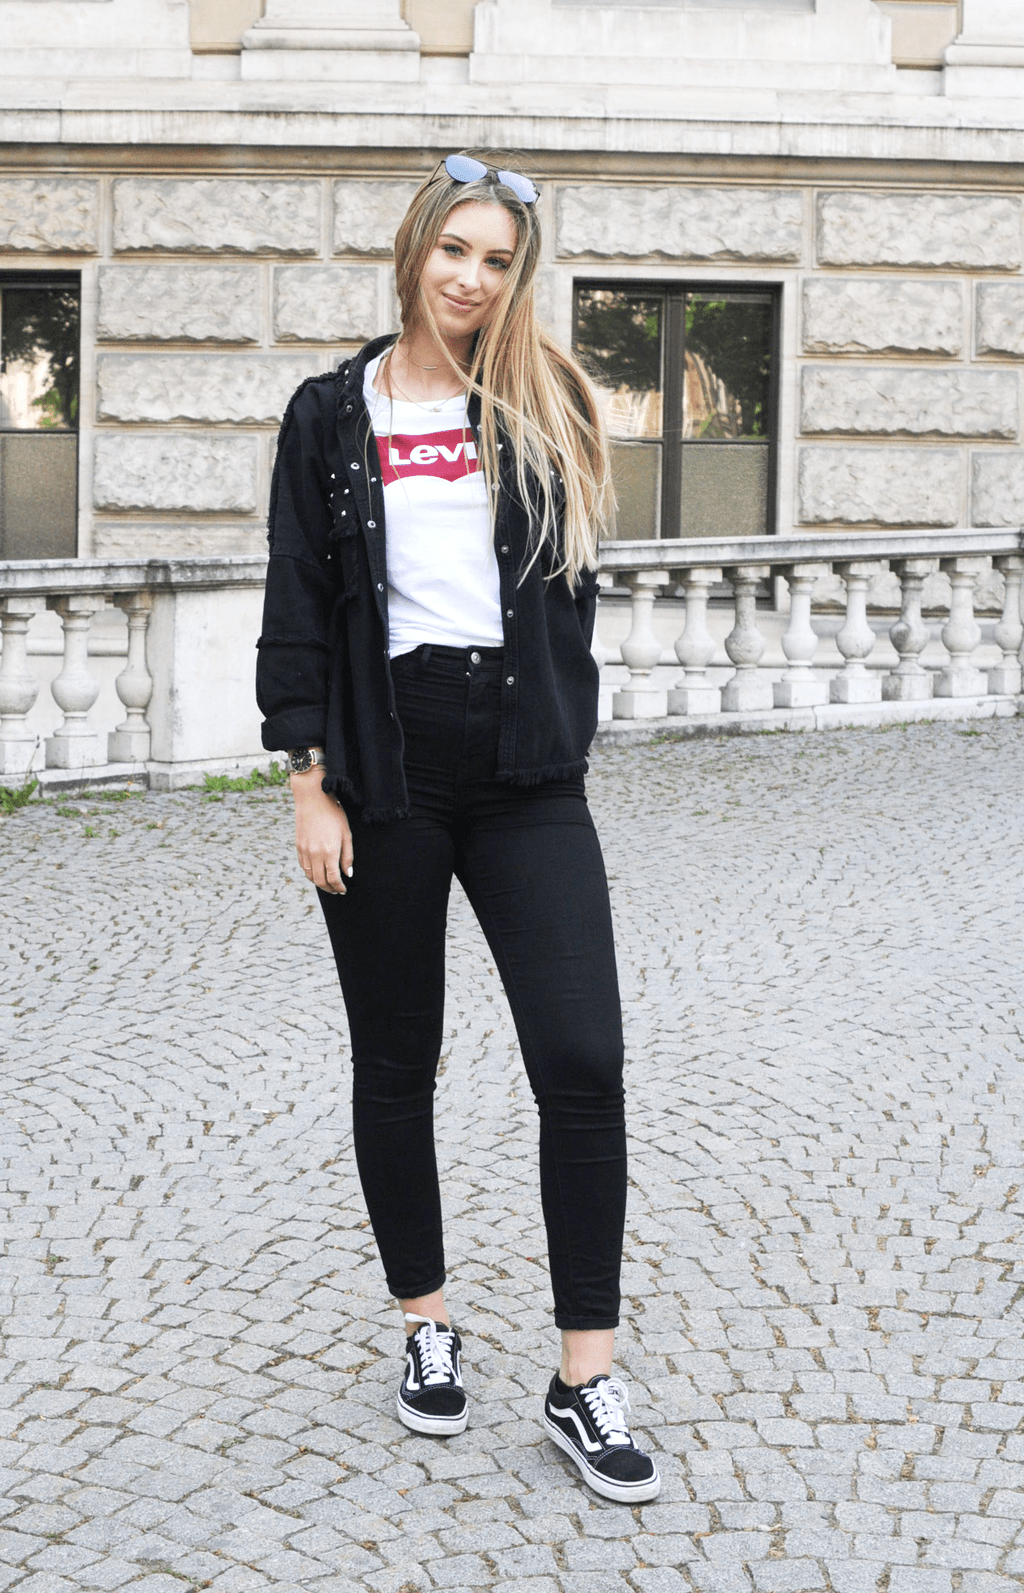 College student fashion at the University of Vienna - student Anika wears a Levi's vintage tee shirt, an oversized black jacket, black skinny jeans, and black and white Vans sneakers